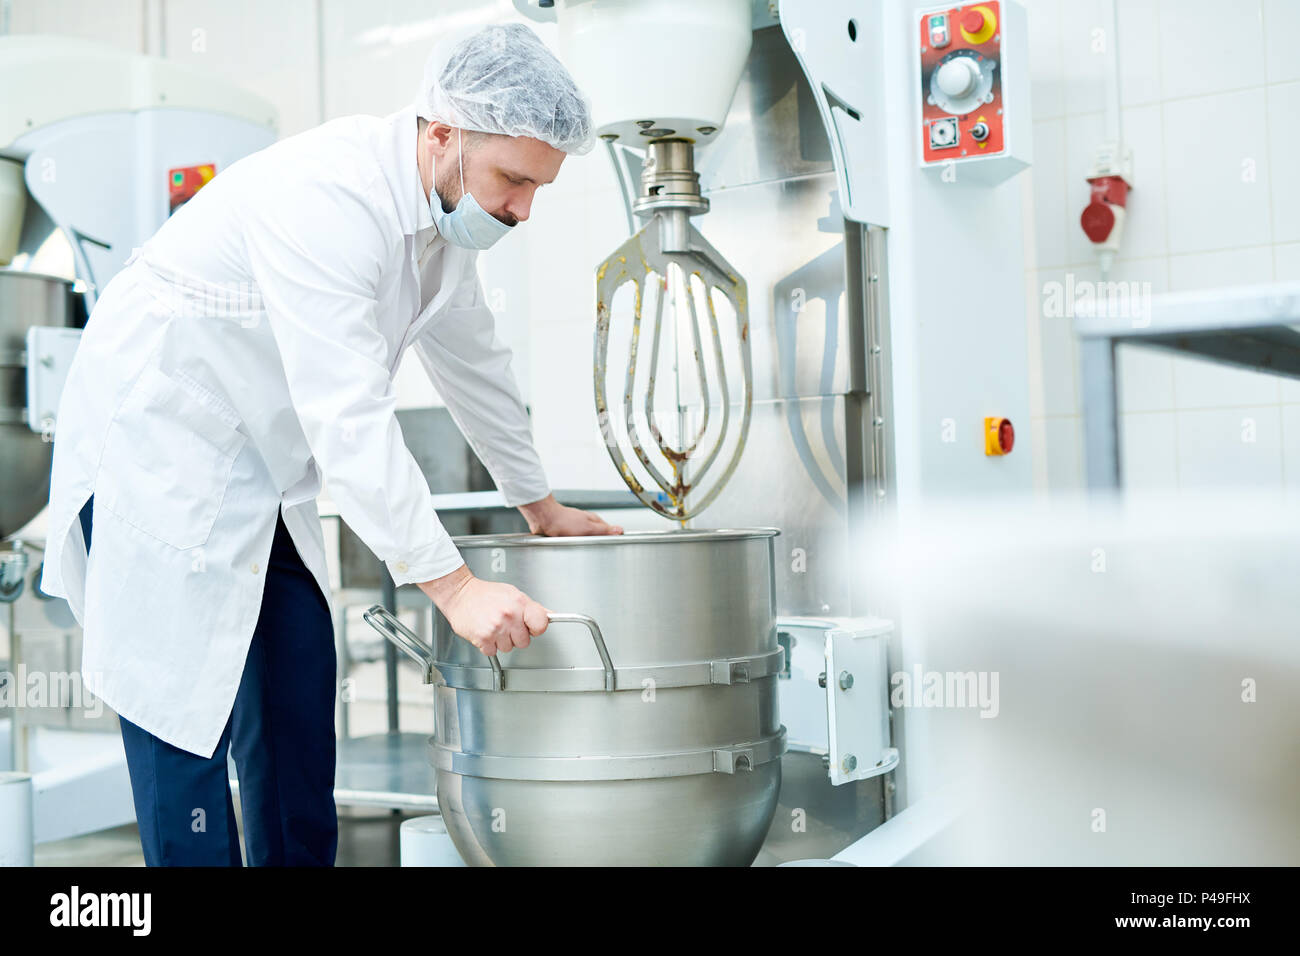 Confectionery factory employee working with machinery - Stock Image